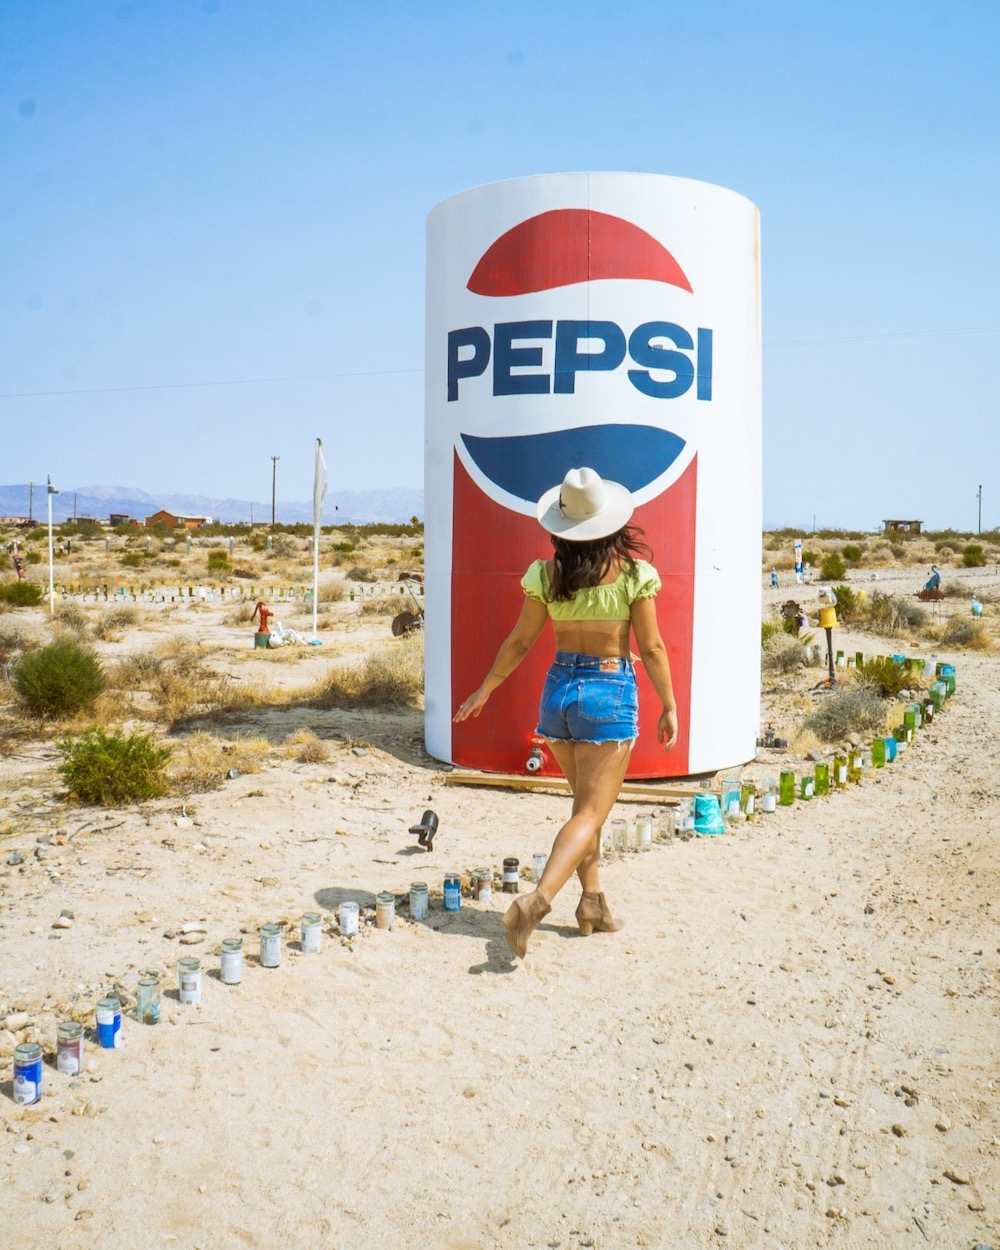 woman at Glass Outhouse Art Gallery 29 palms pepsi sculpture